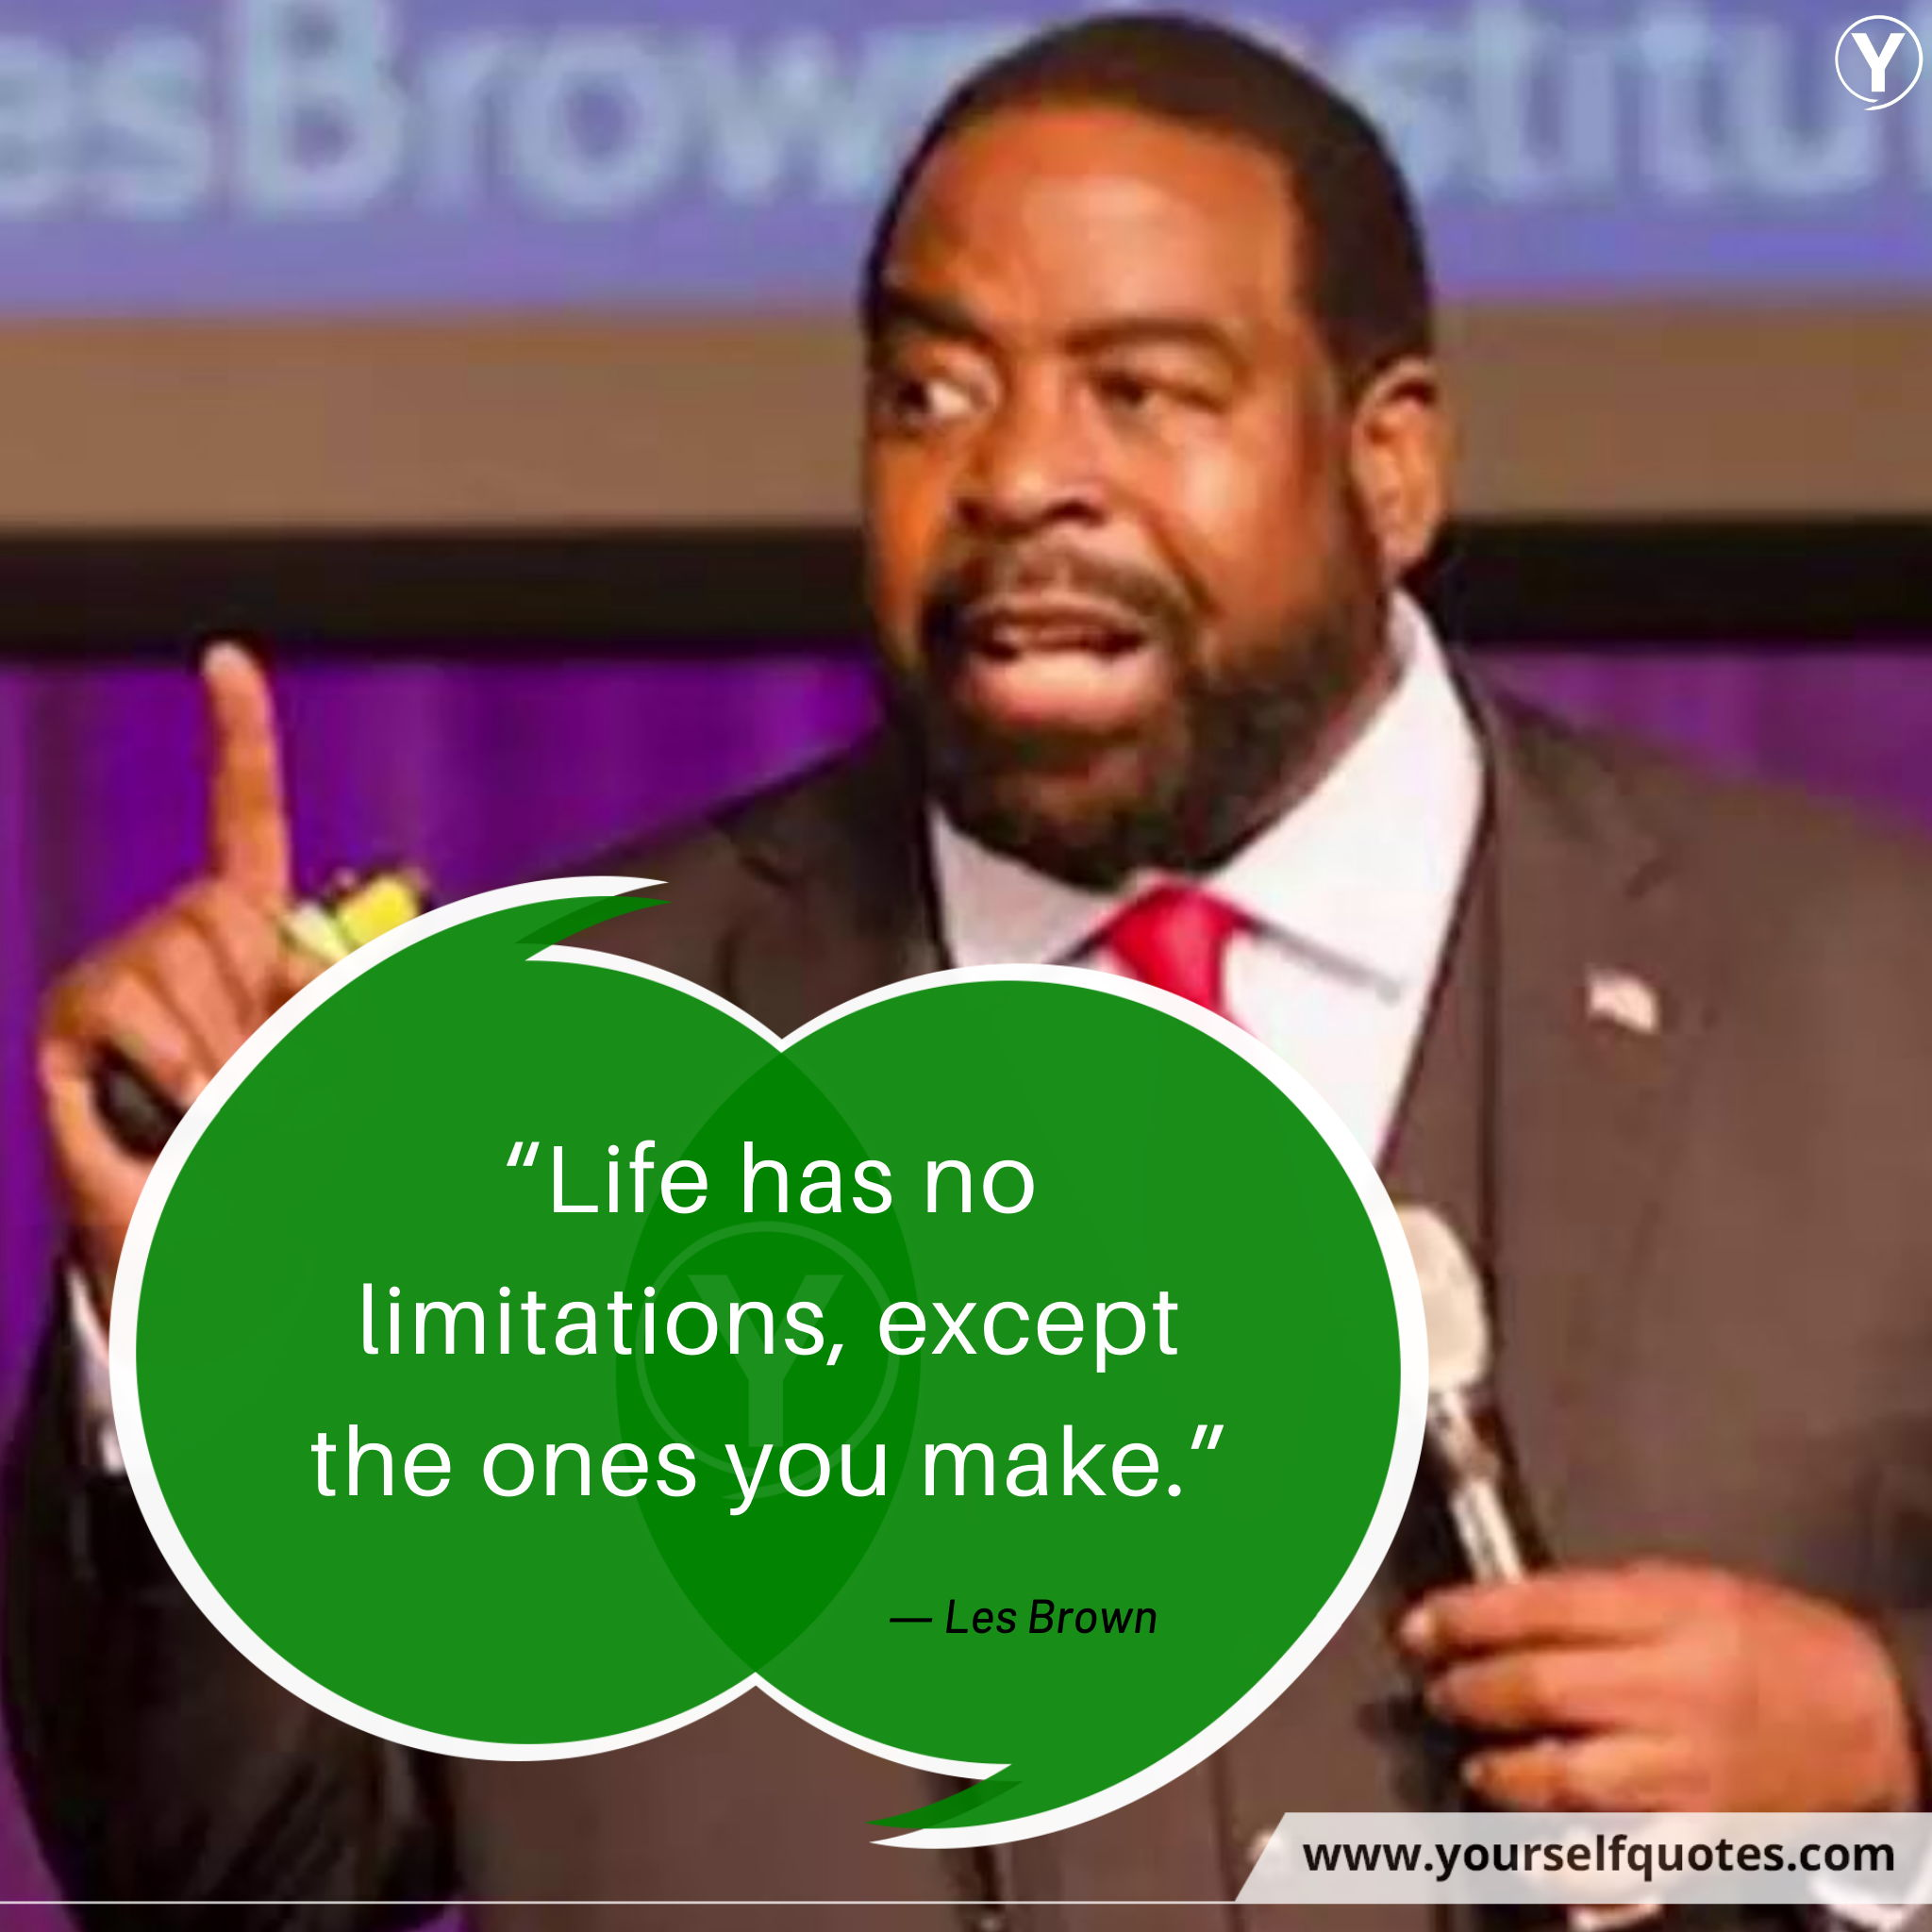 Quotes on Life by Les Brown